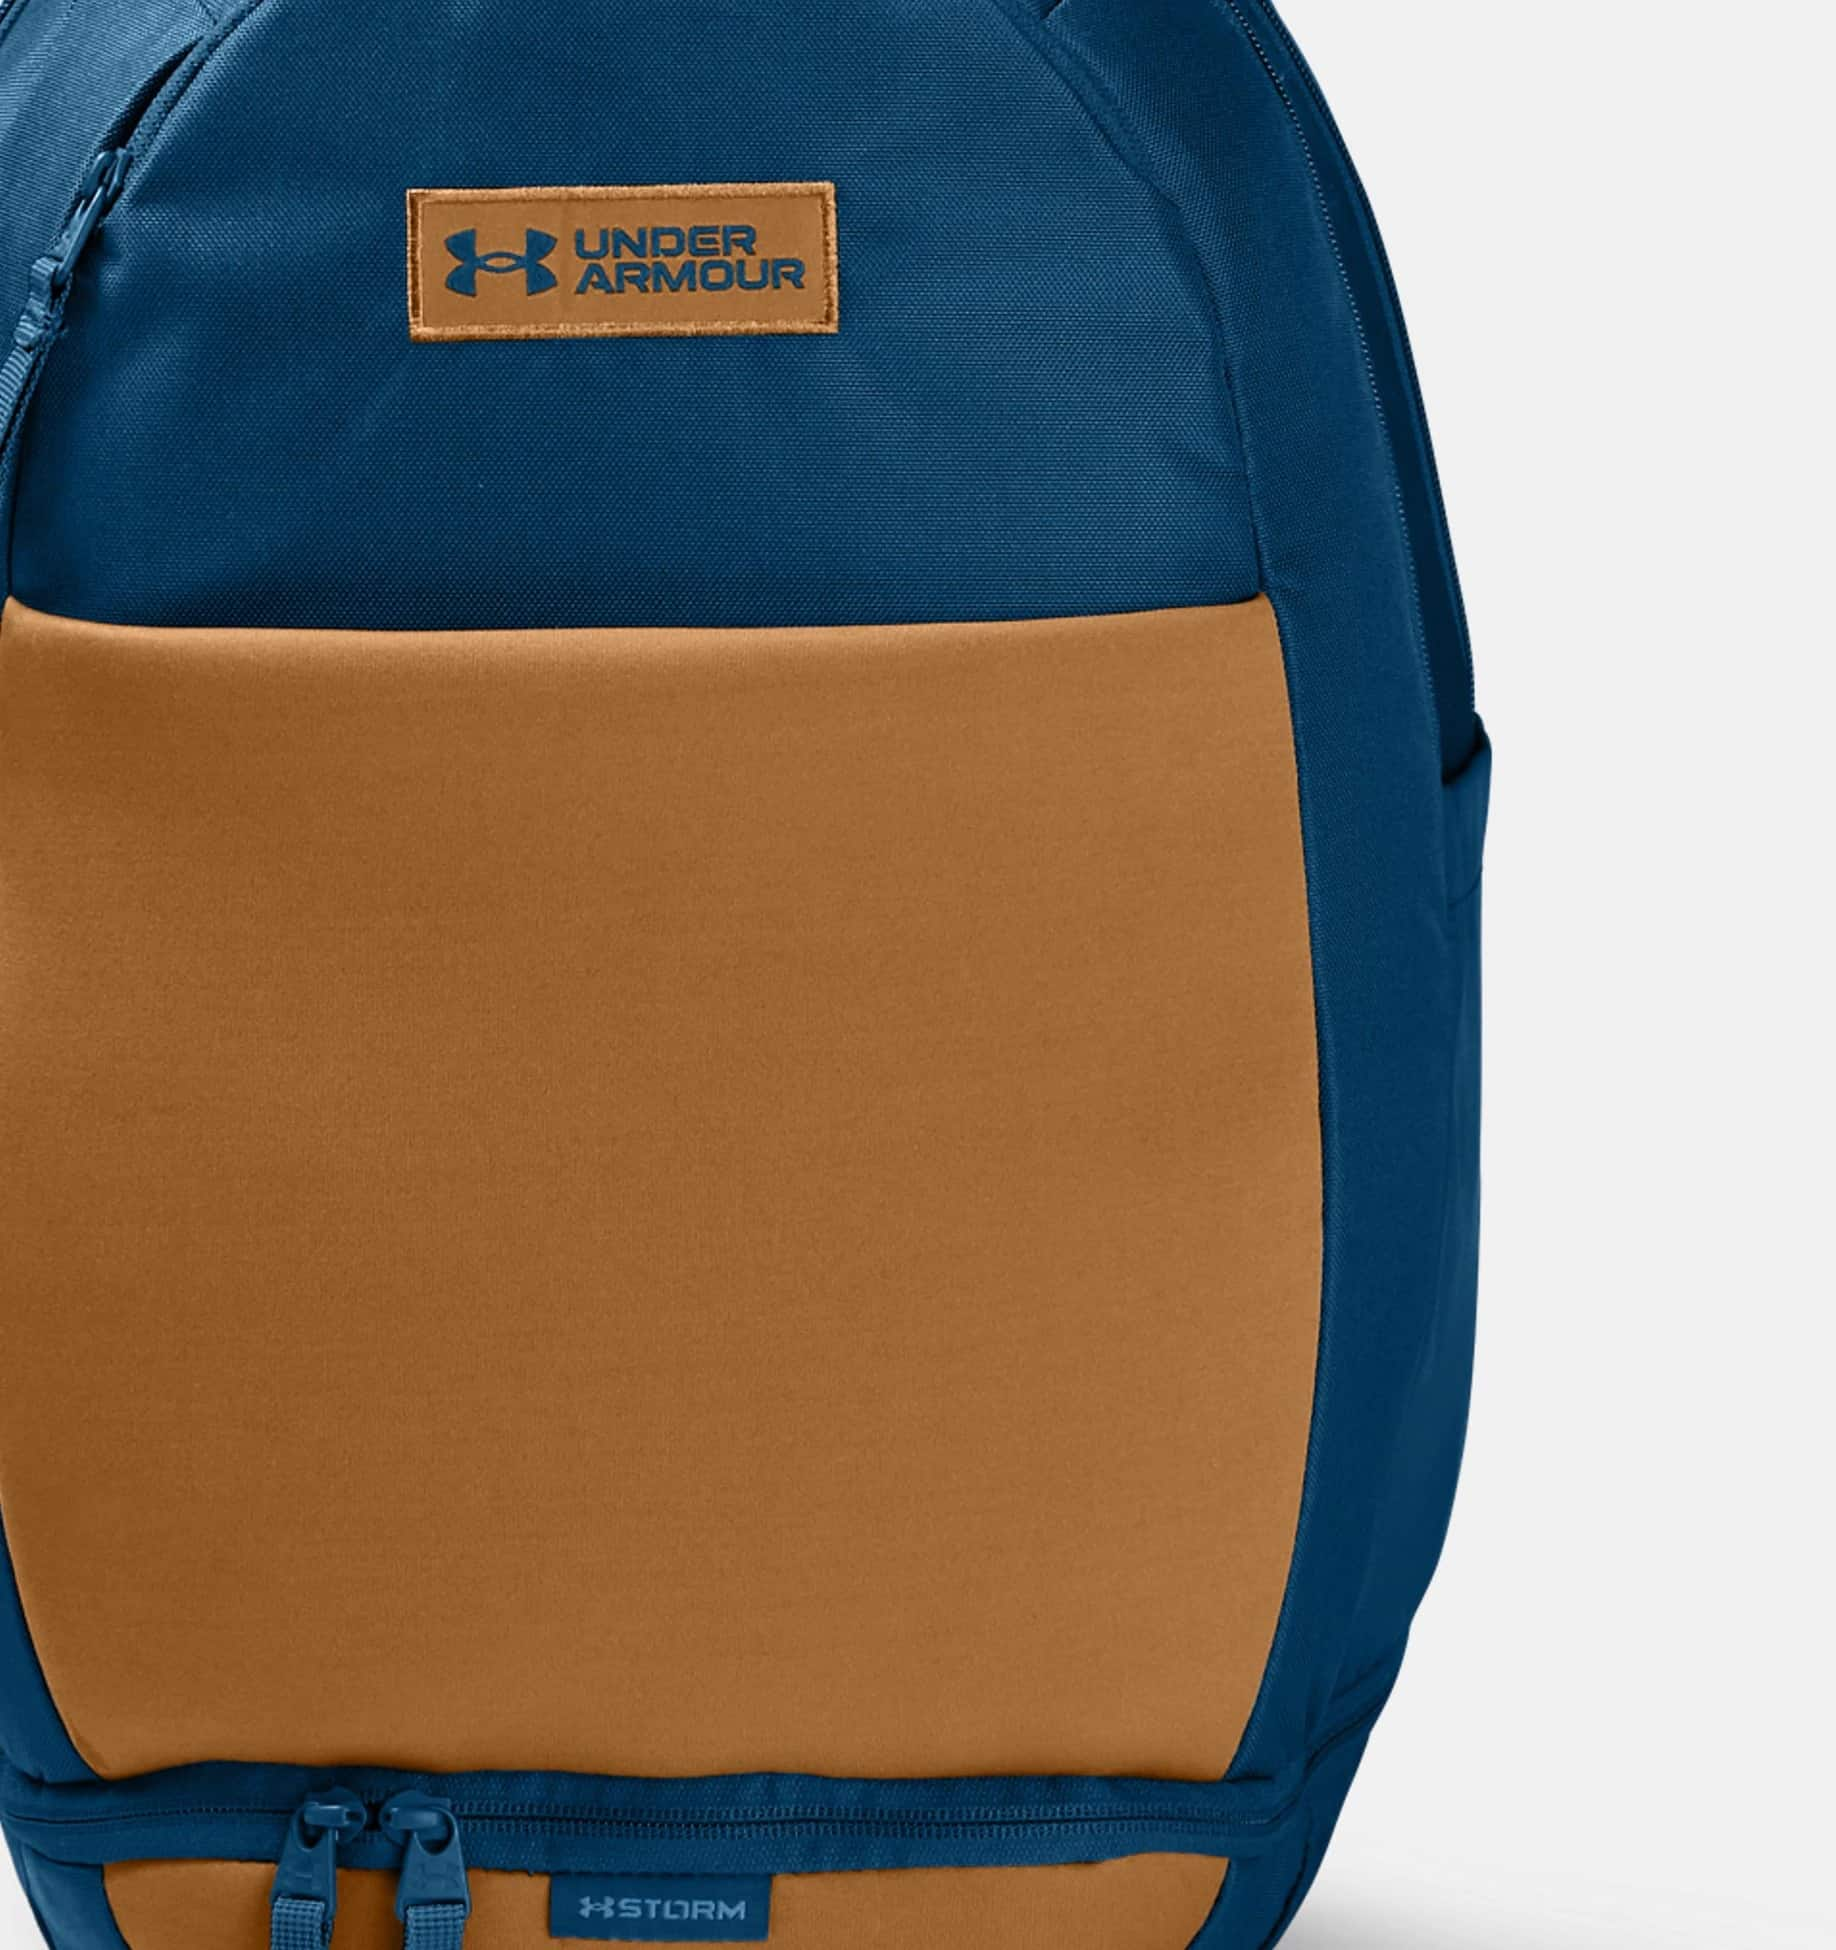 Under Armour Recruit 3.0 Backpack (Select Colors) $32.50 + Free Shipping